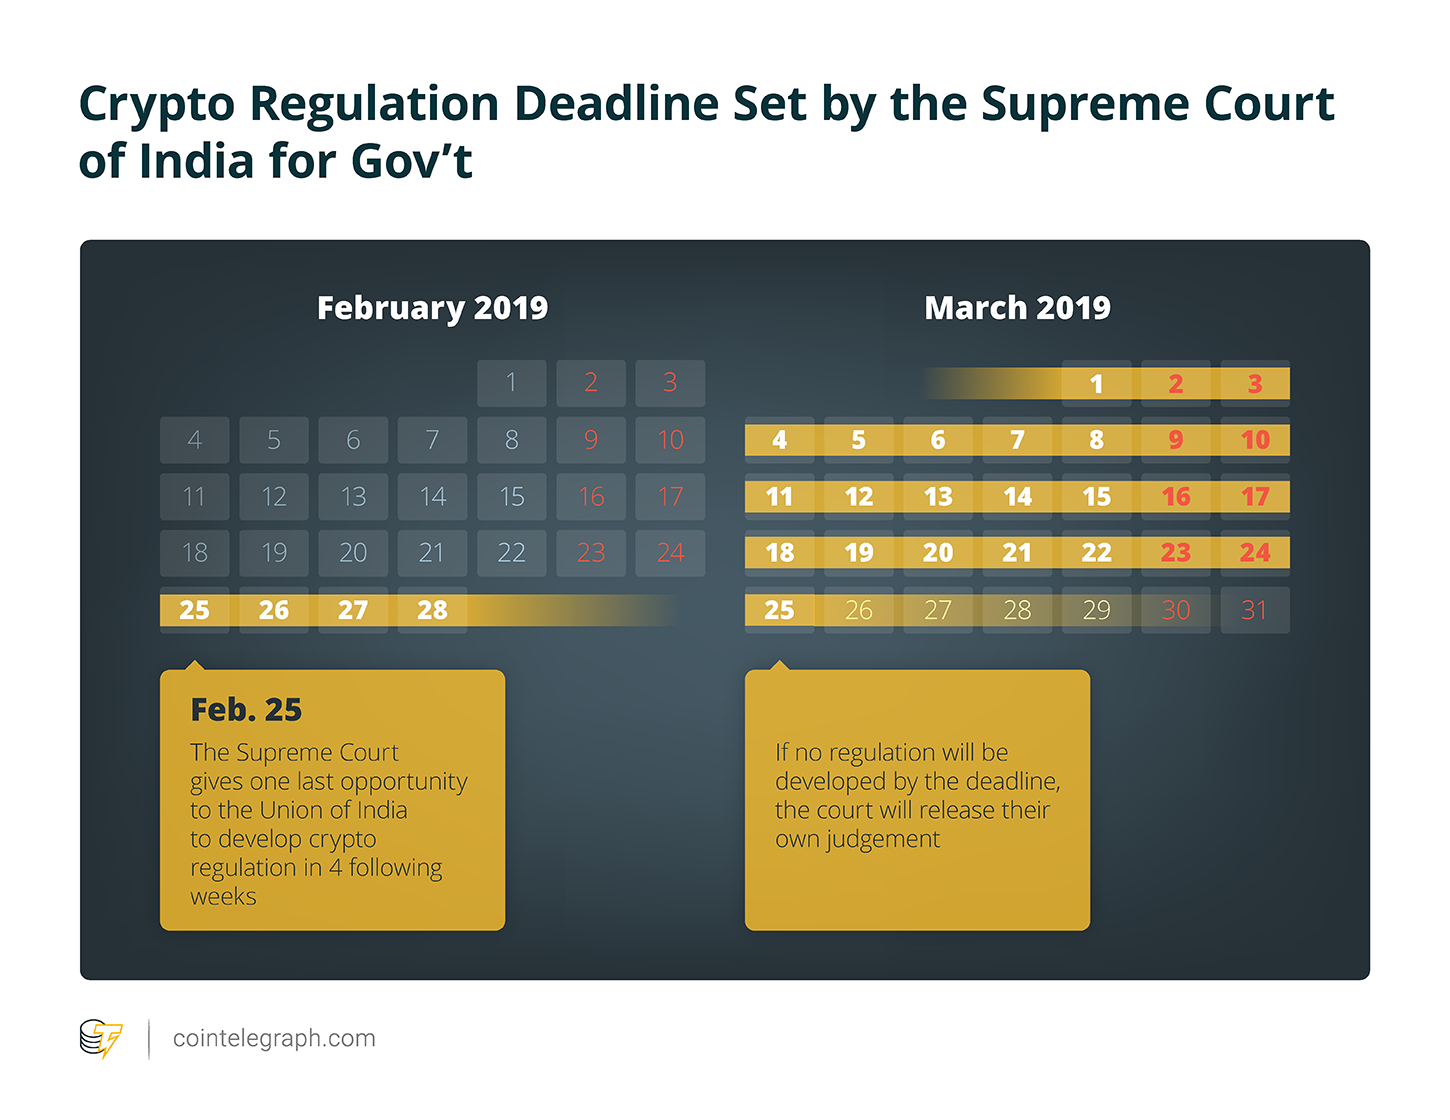 Crypto Regulation Deadline Set by the Supreme Court of India for Gov't